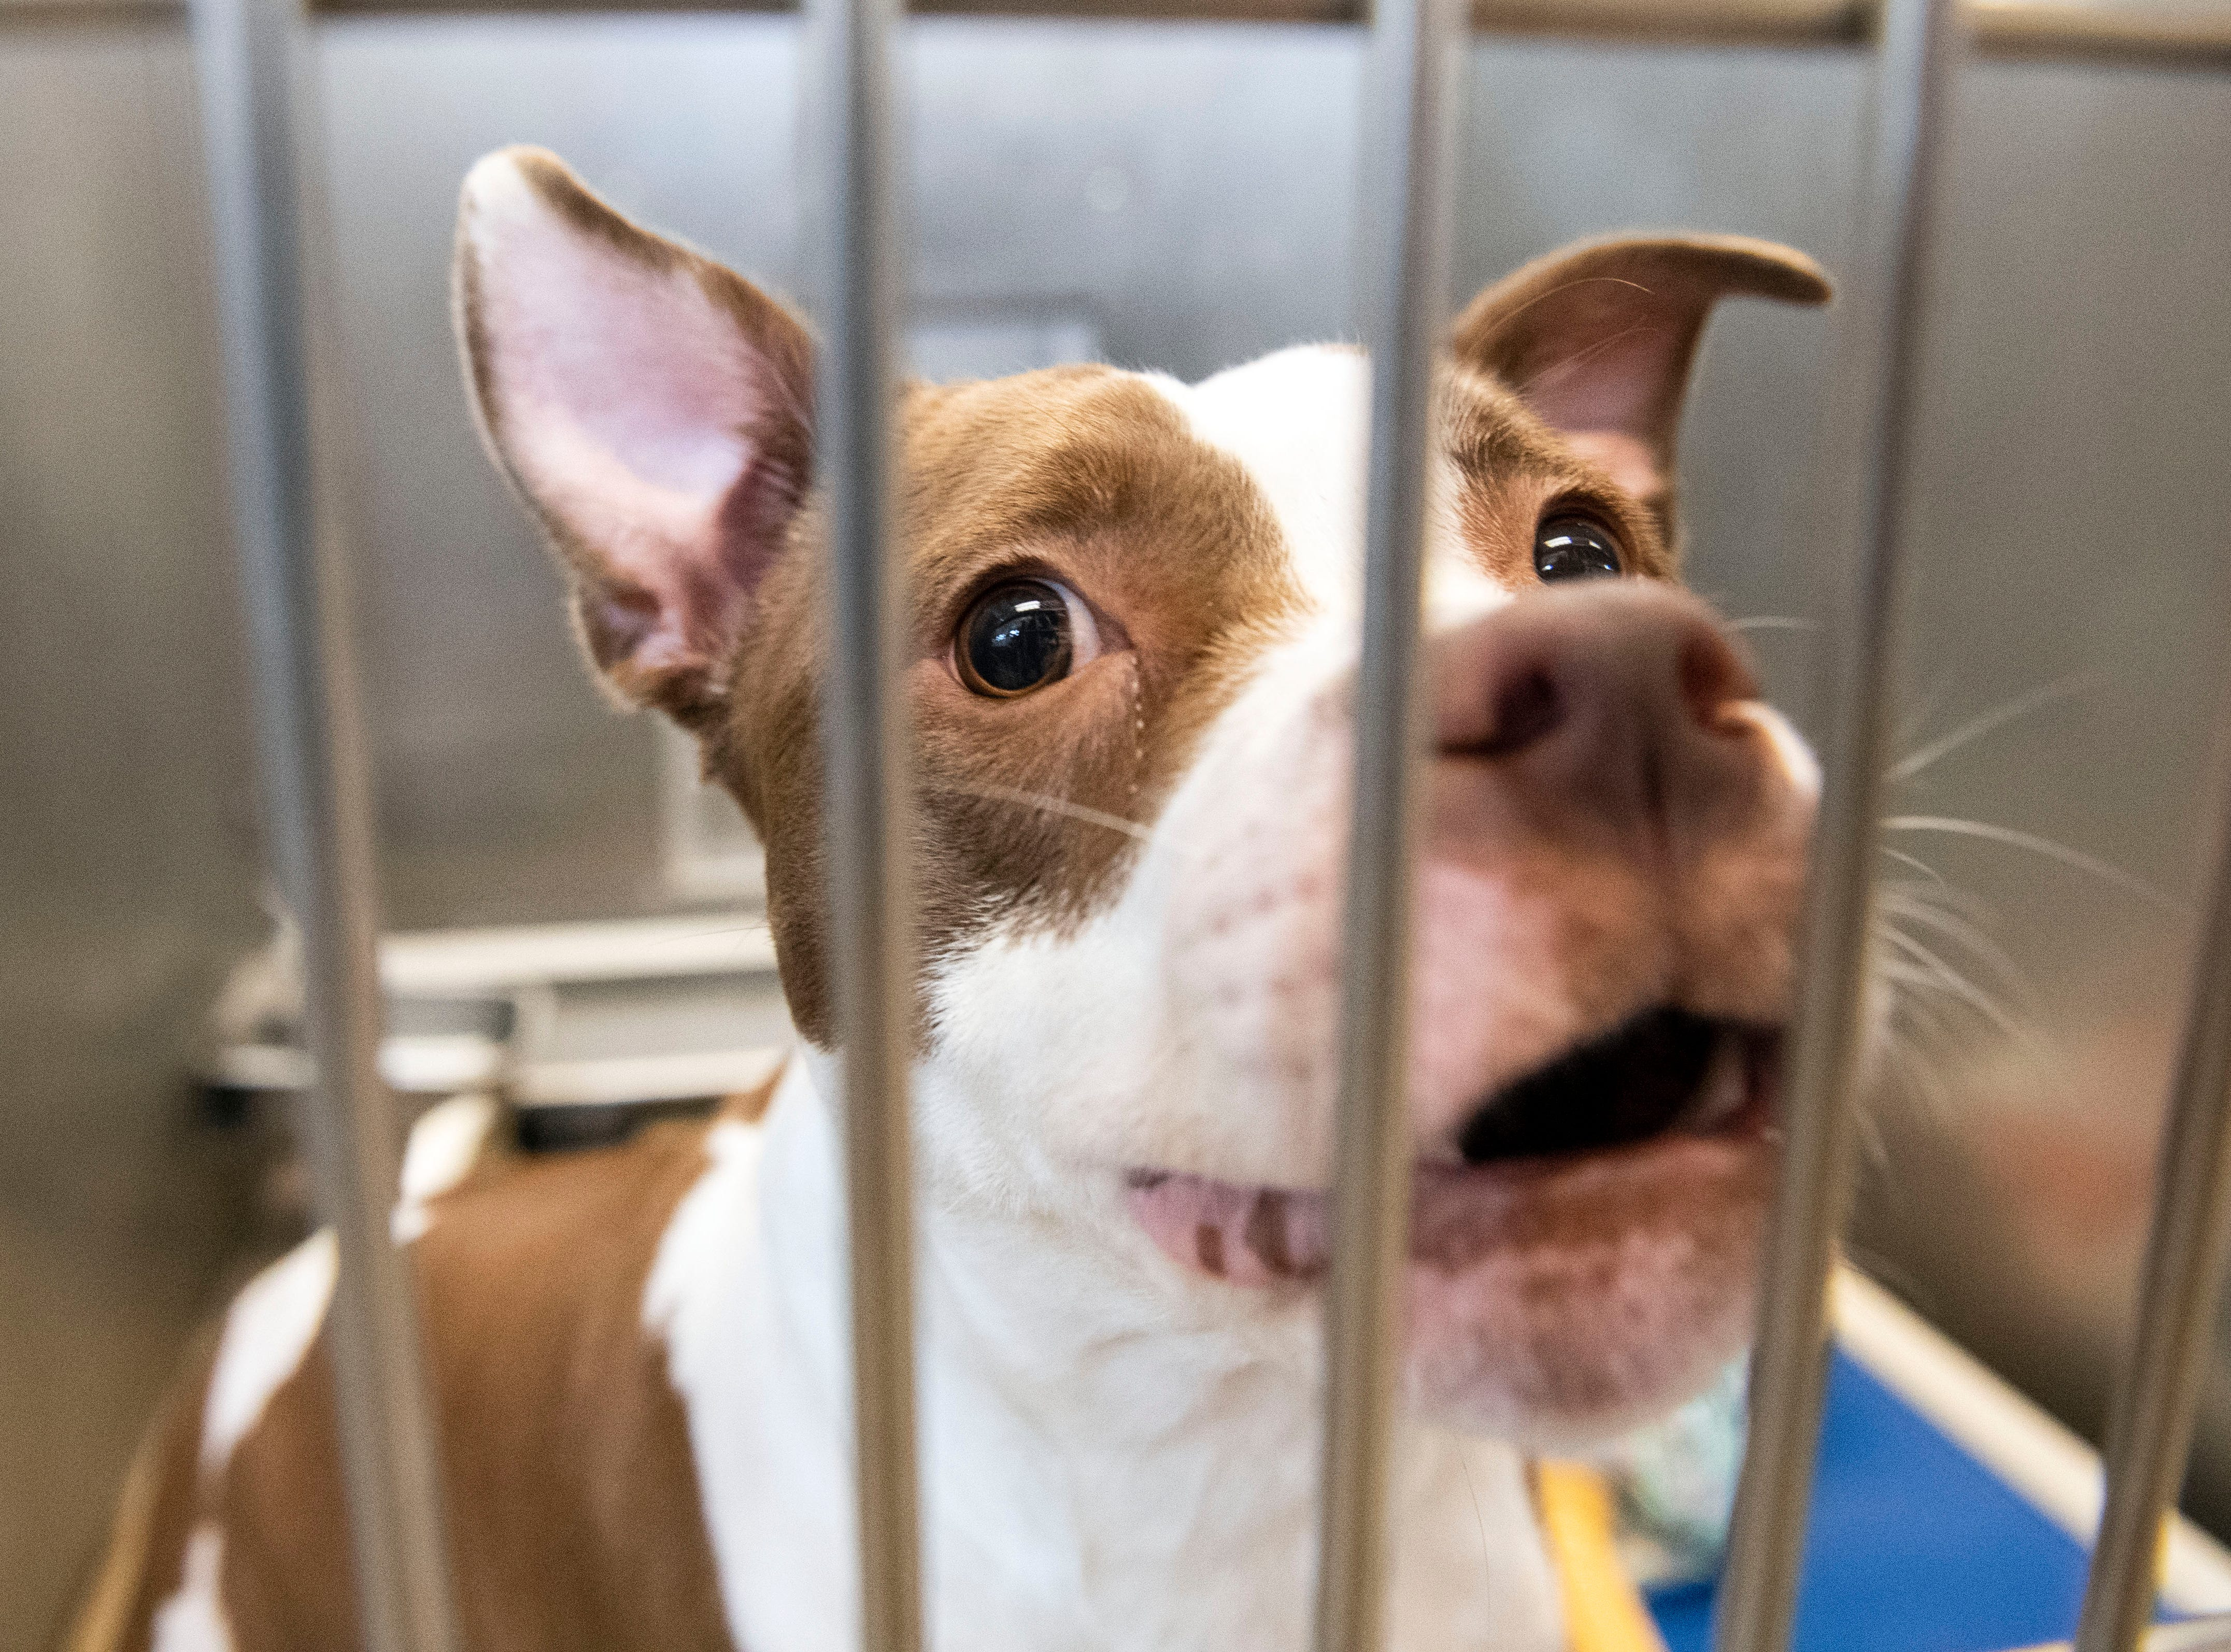 A no-named pit bull, aged 1-5 years old, at the York County SPCA, Thursday, Feb. 7, 2019. She was brought into the shelter on Locust St. in Lancaster city.